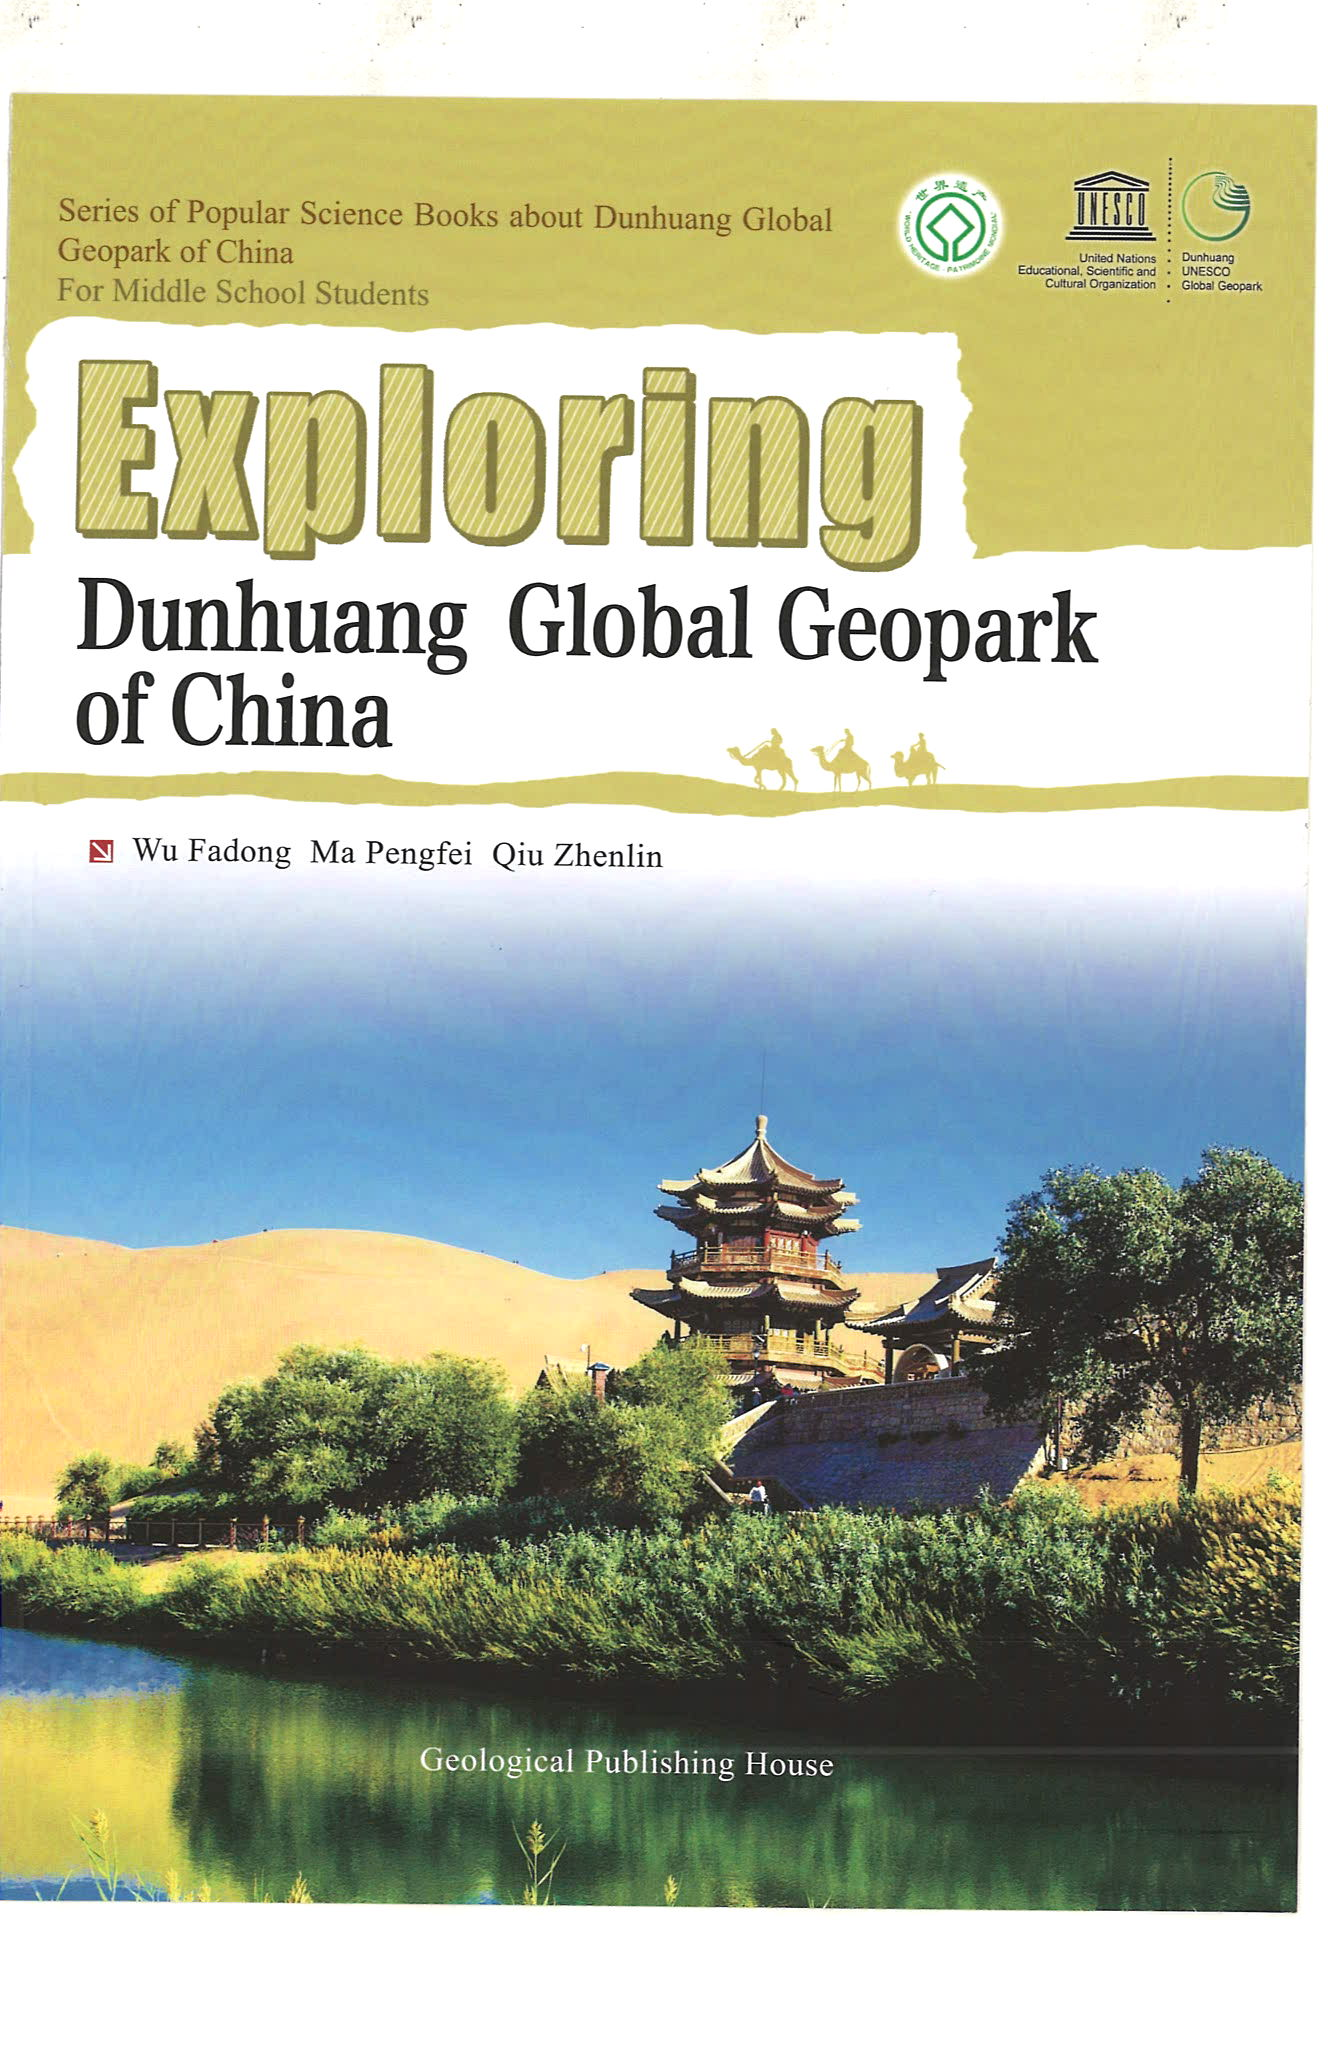 Exploring Dunhuang Global Geopark of China